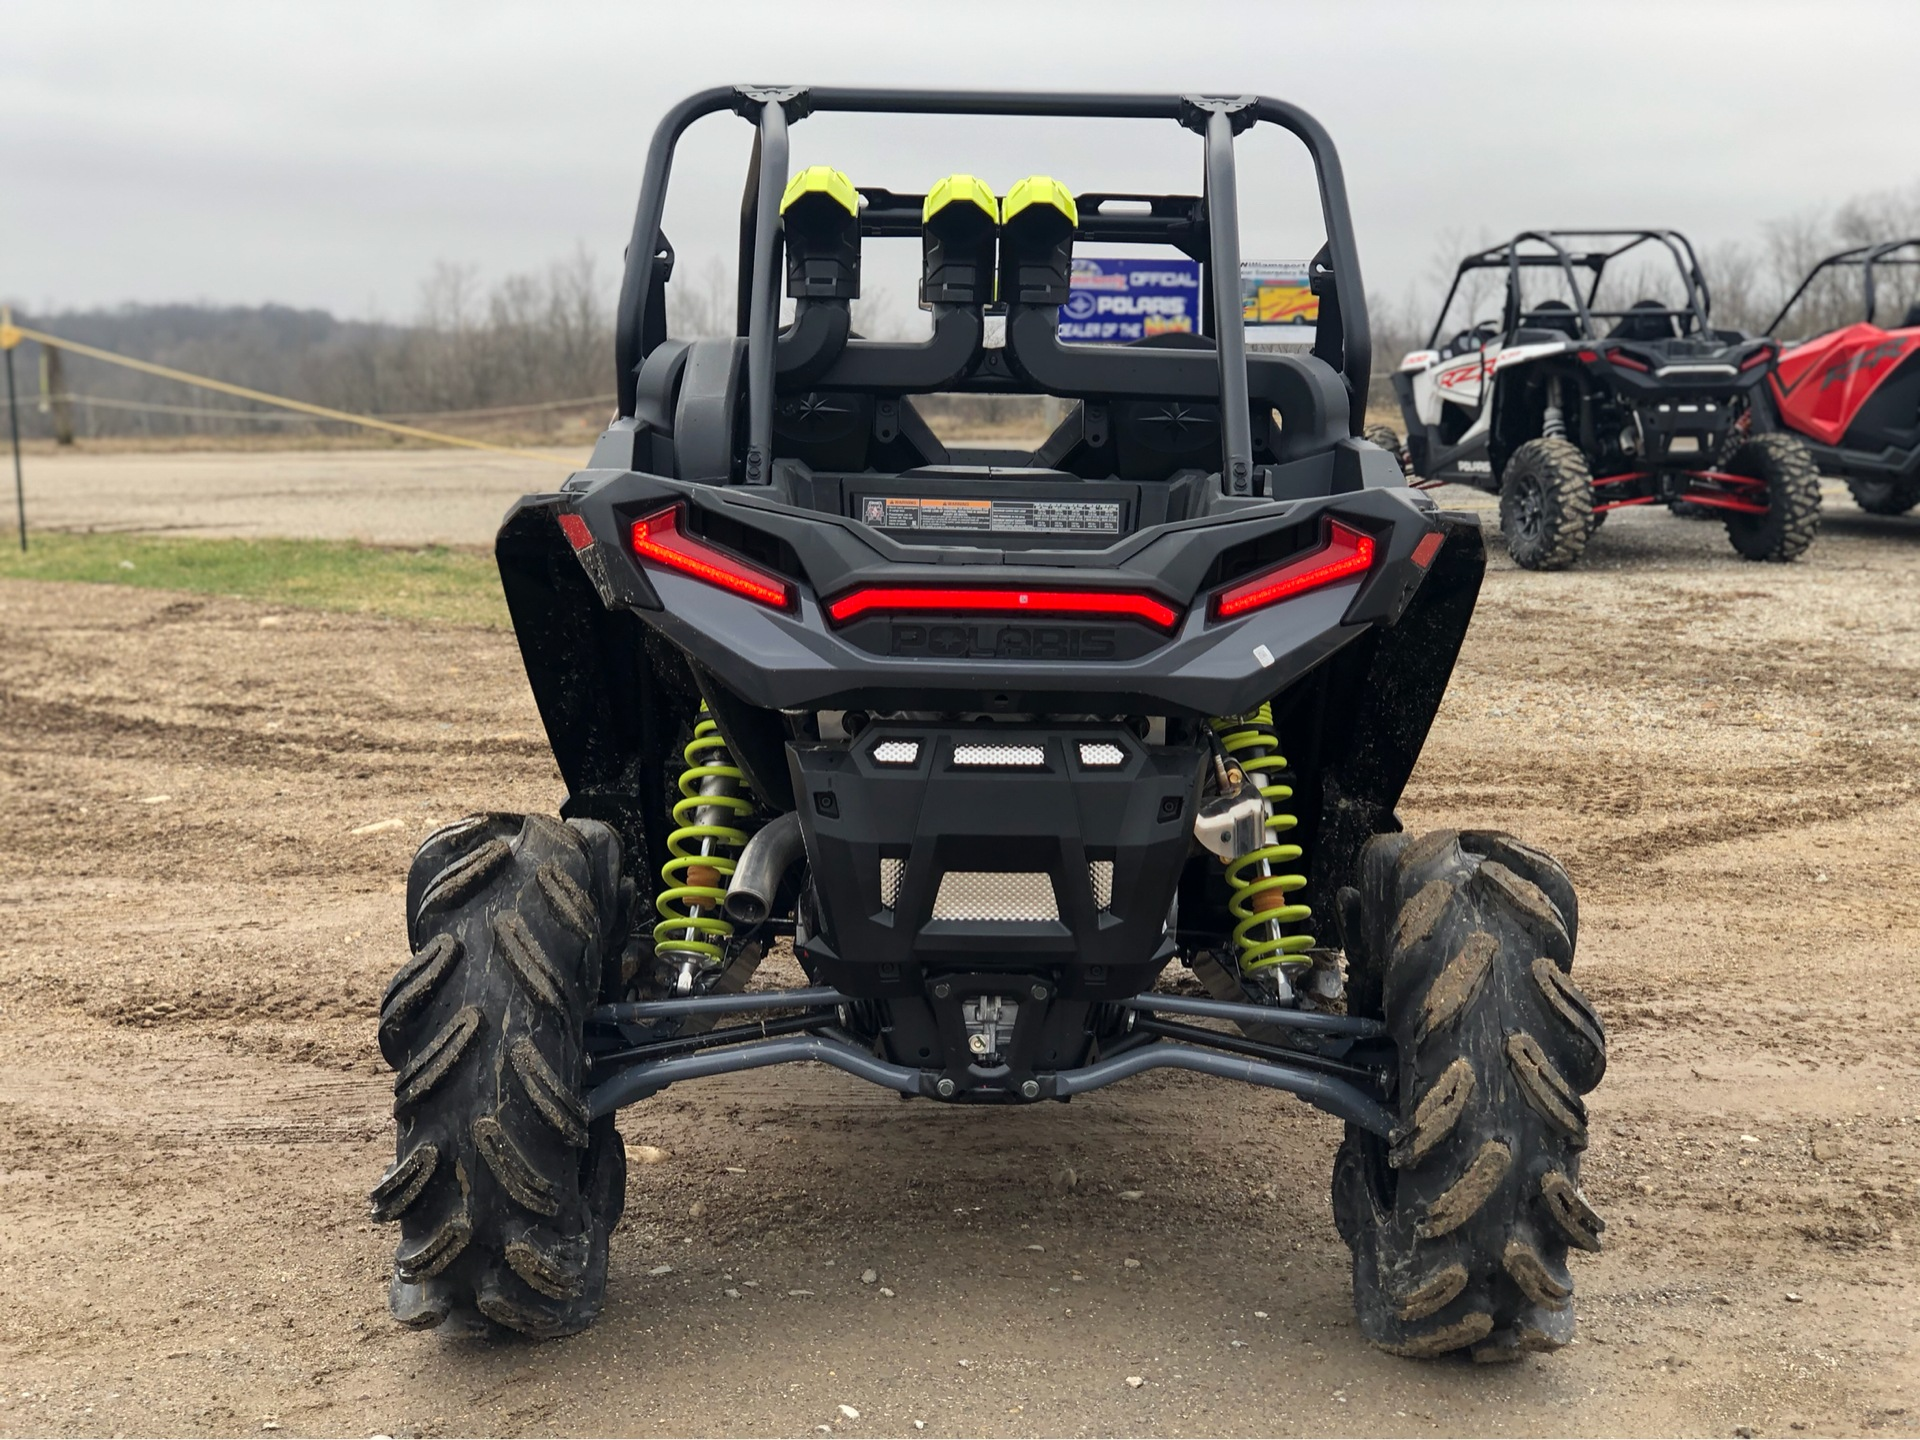 2020 Polaris RZR XP 1000 High Lifter in Attica, Indiana - Photo 9